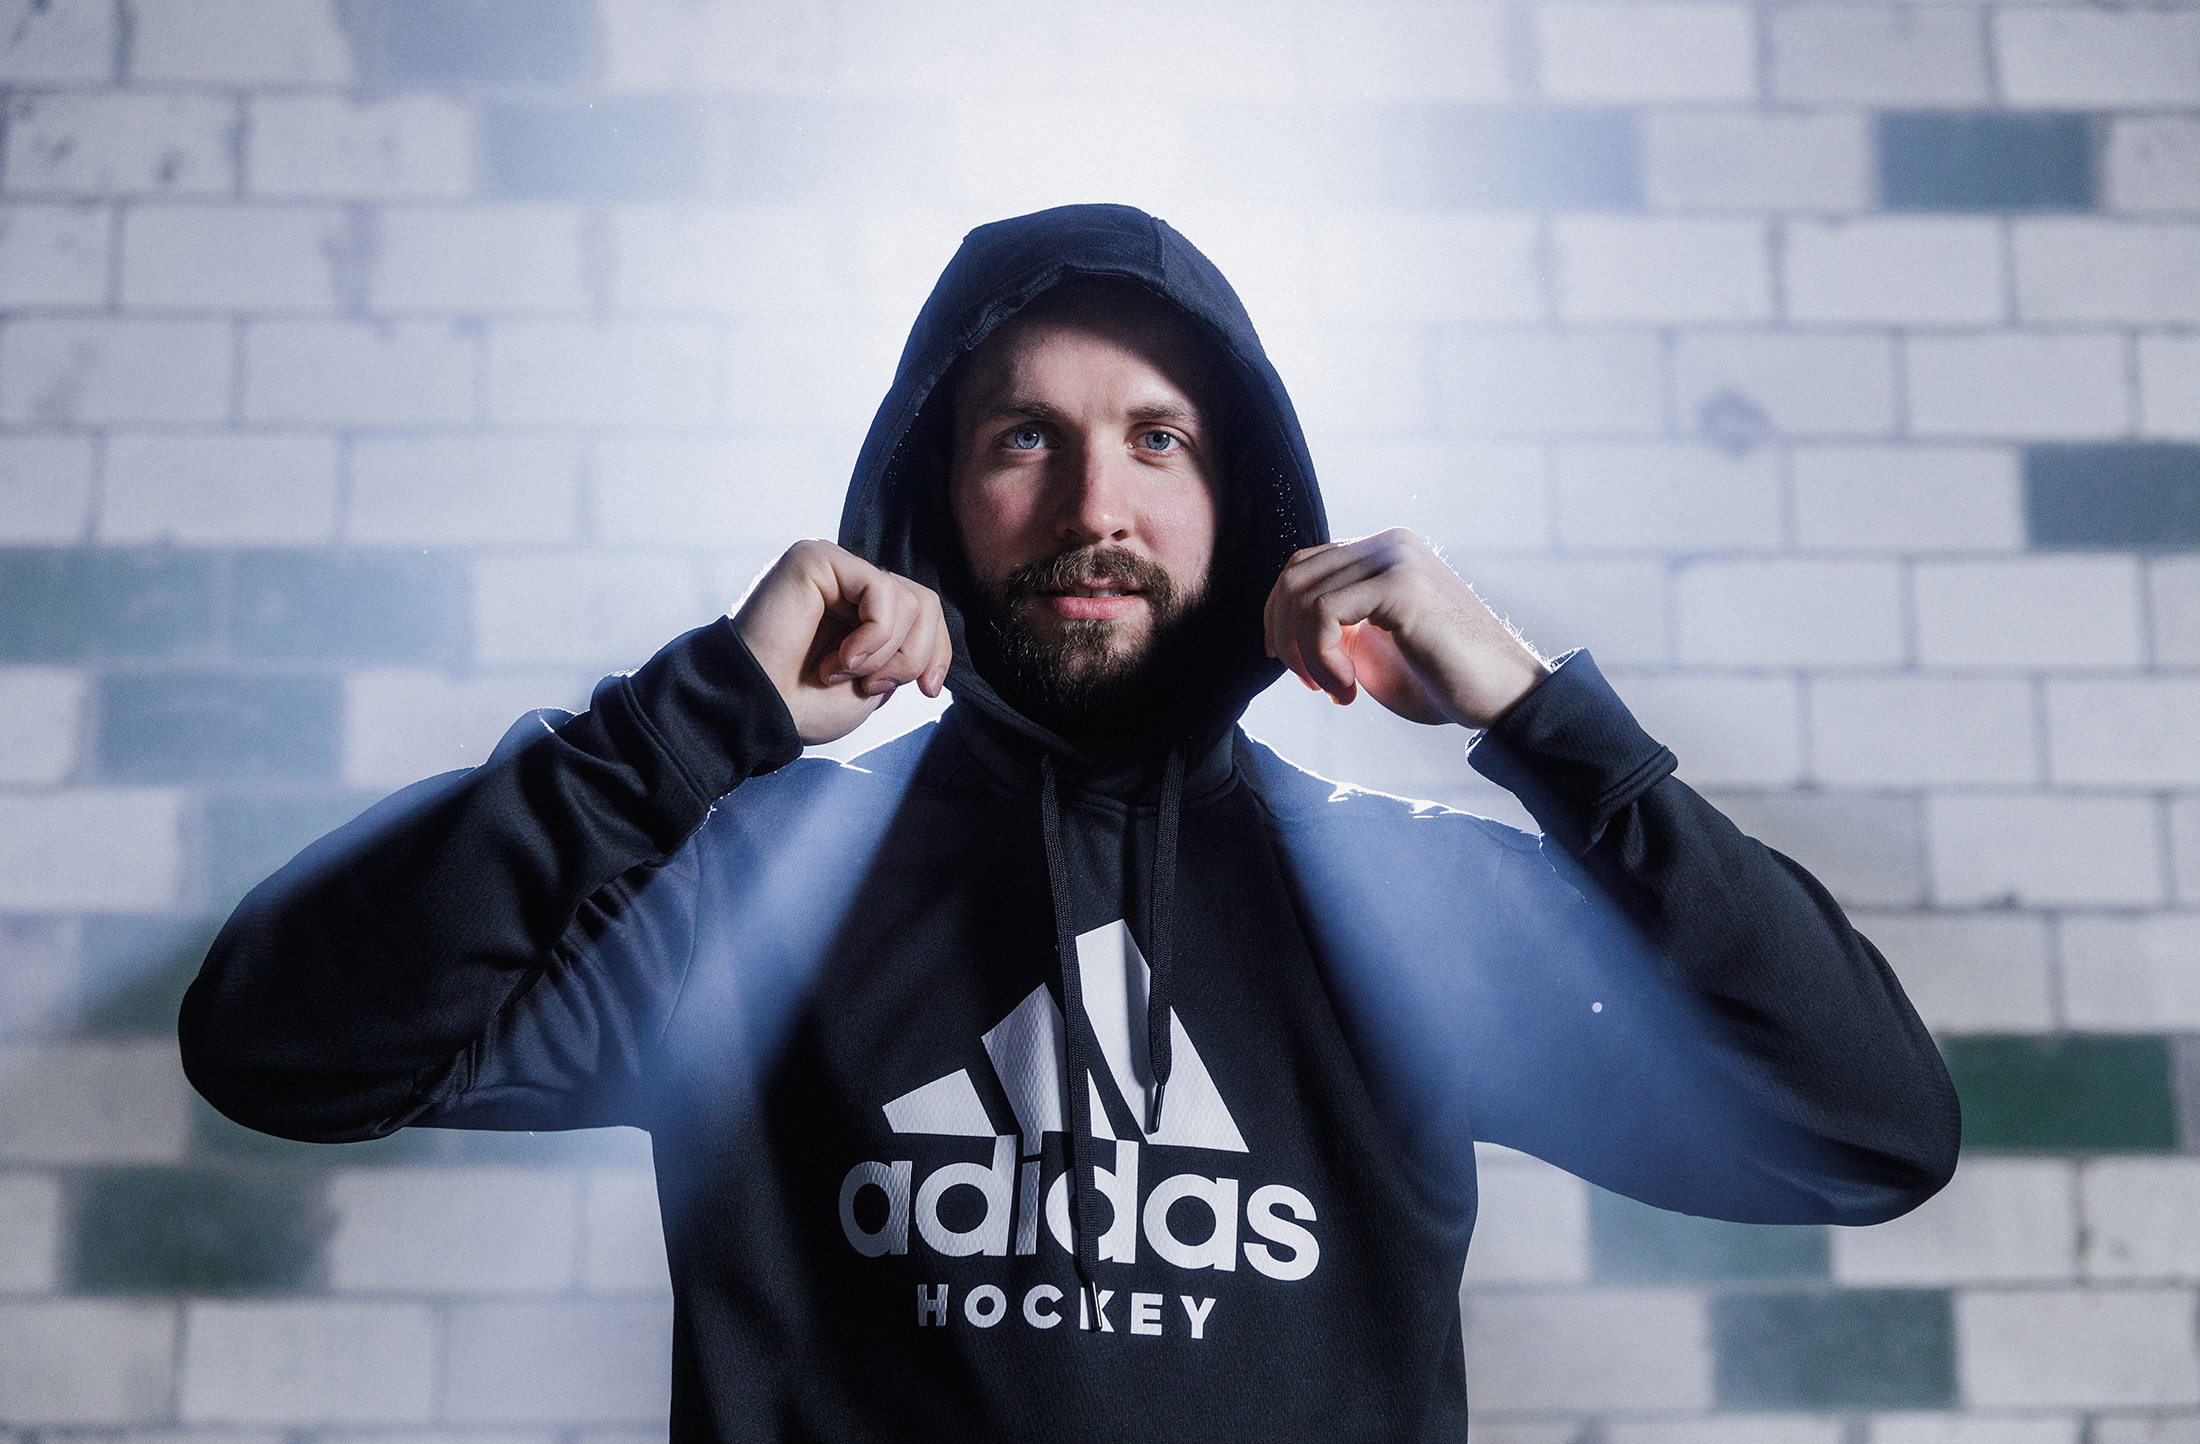 Adidas Hockey 2019- Nikita Kucherov, Tampa Bay Lightning